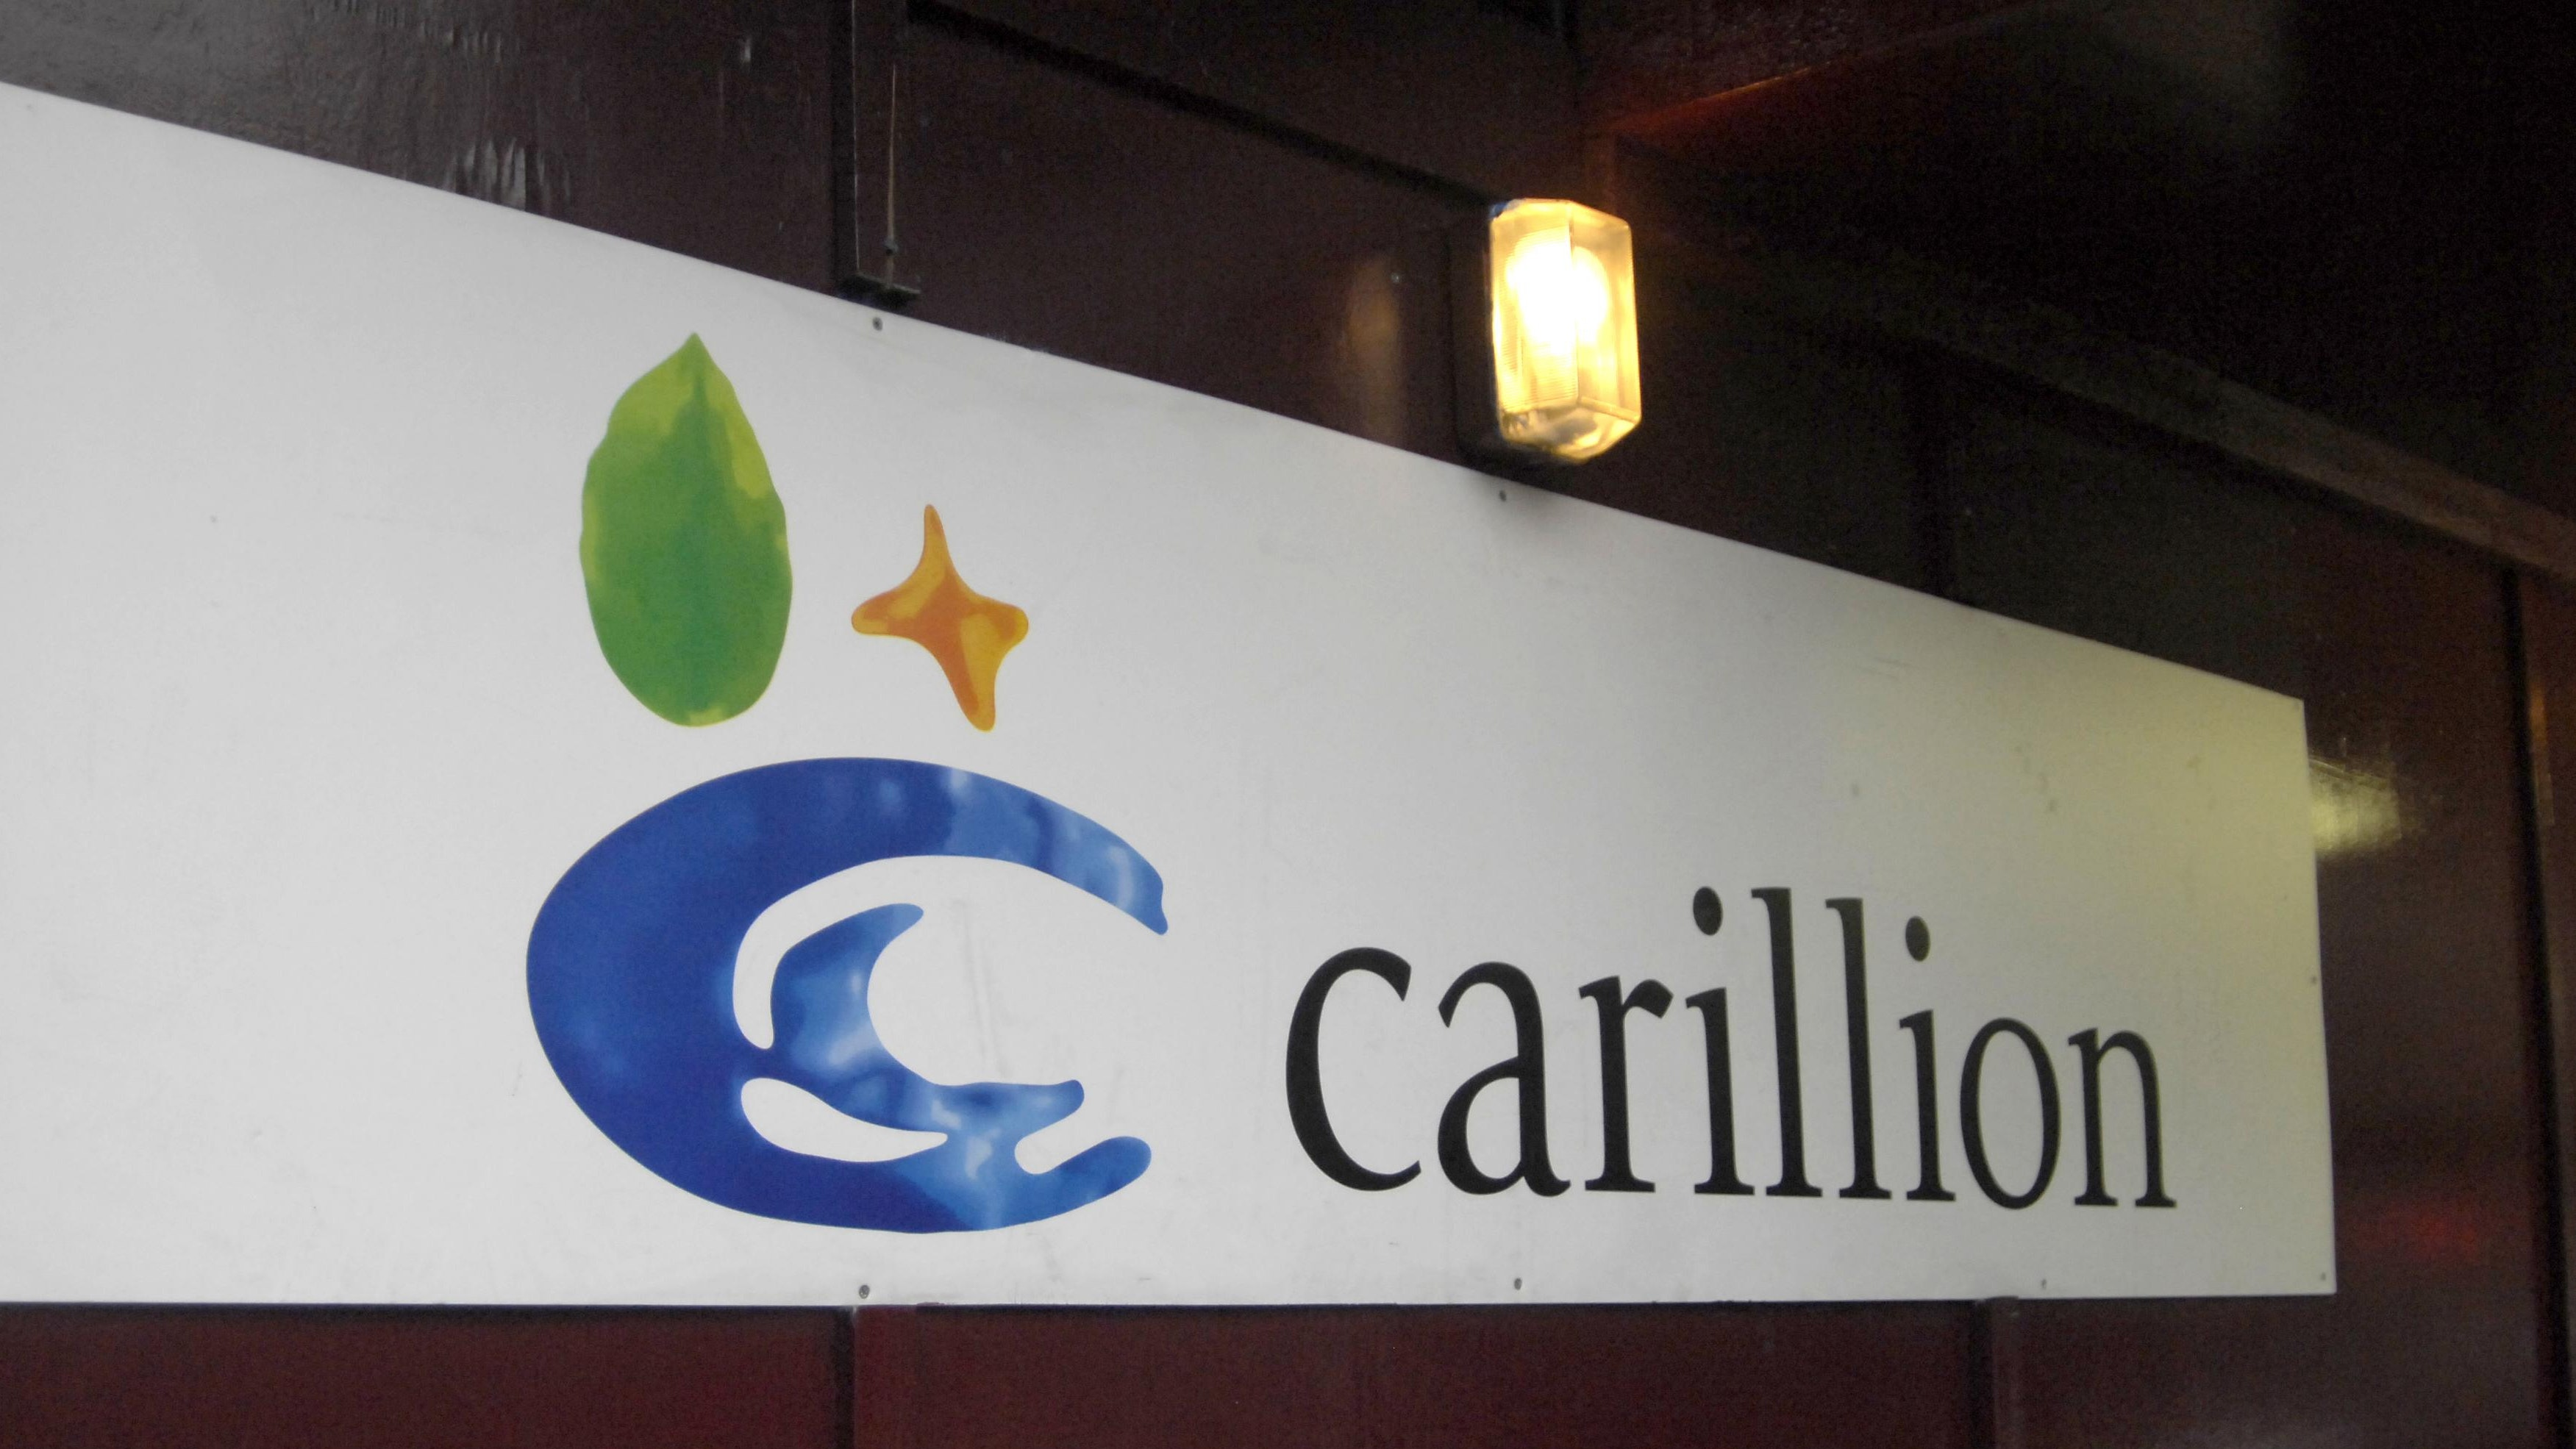 'Same old greed': report into Carillion collapse pulls no punches